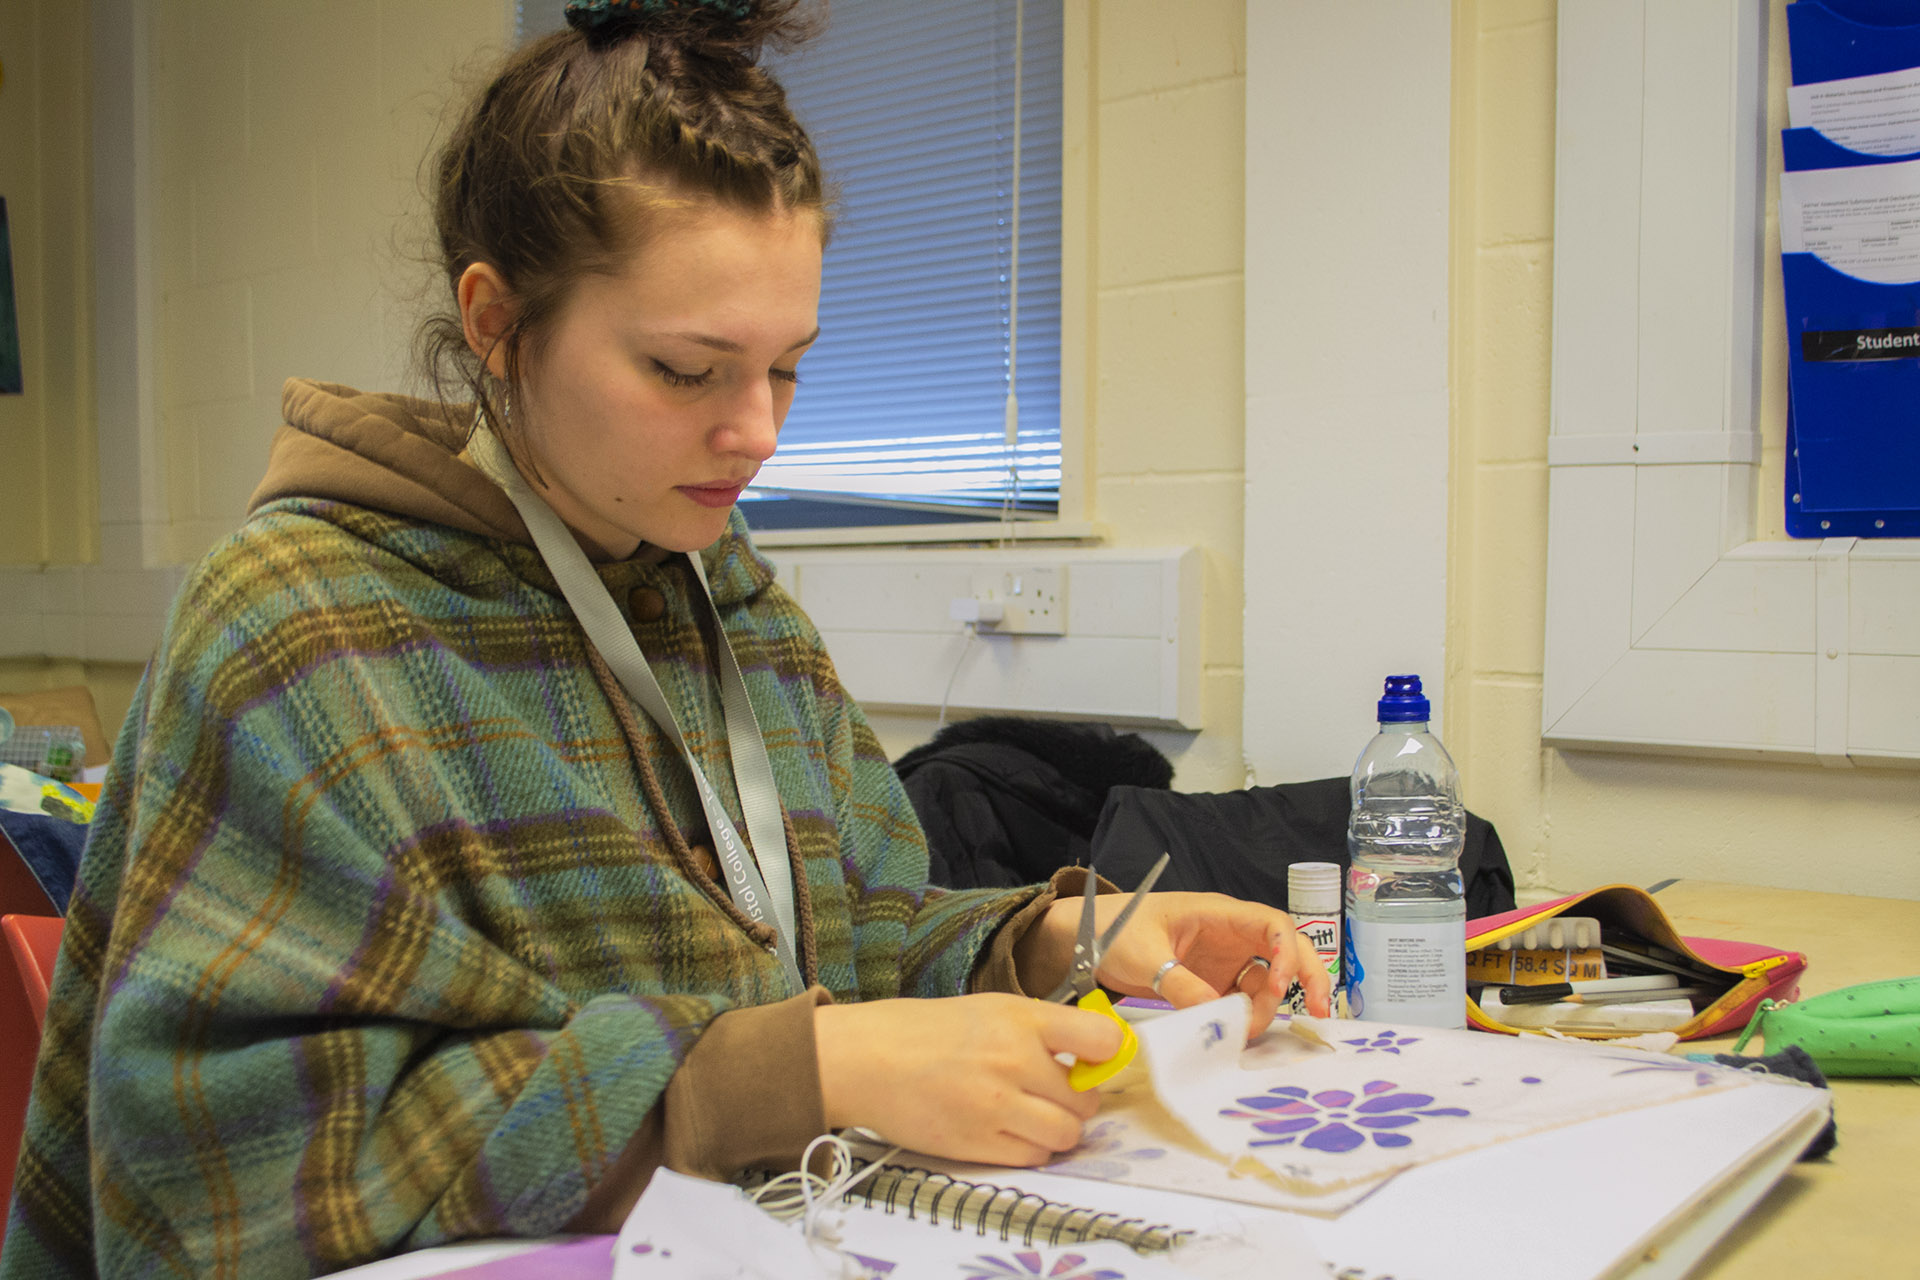 School leaver and young student studying art and design